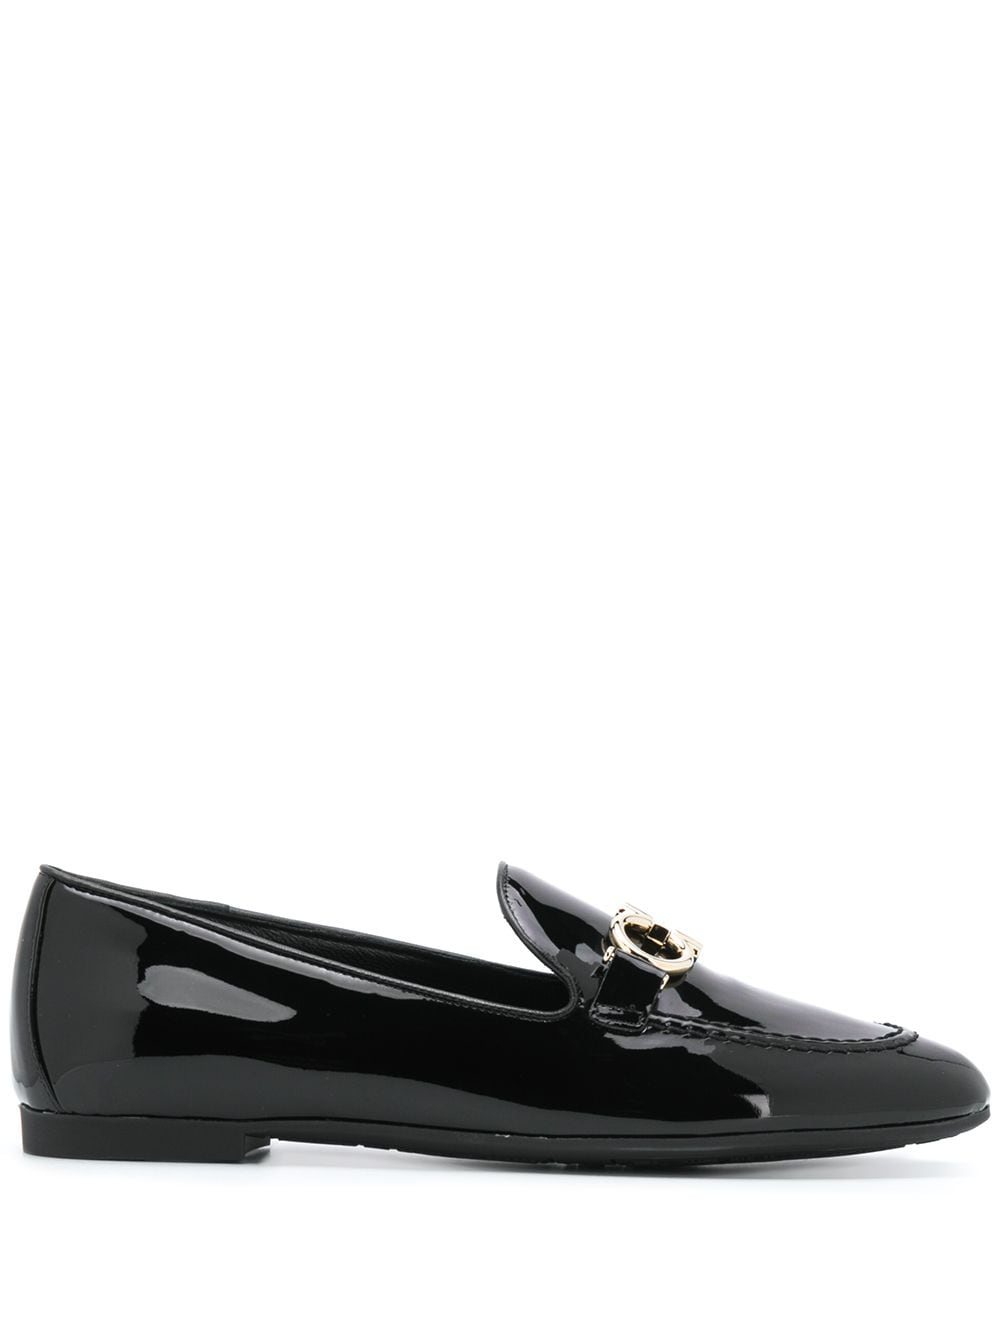 Trifoglio Leather Loafers